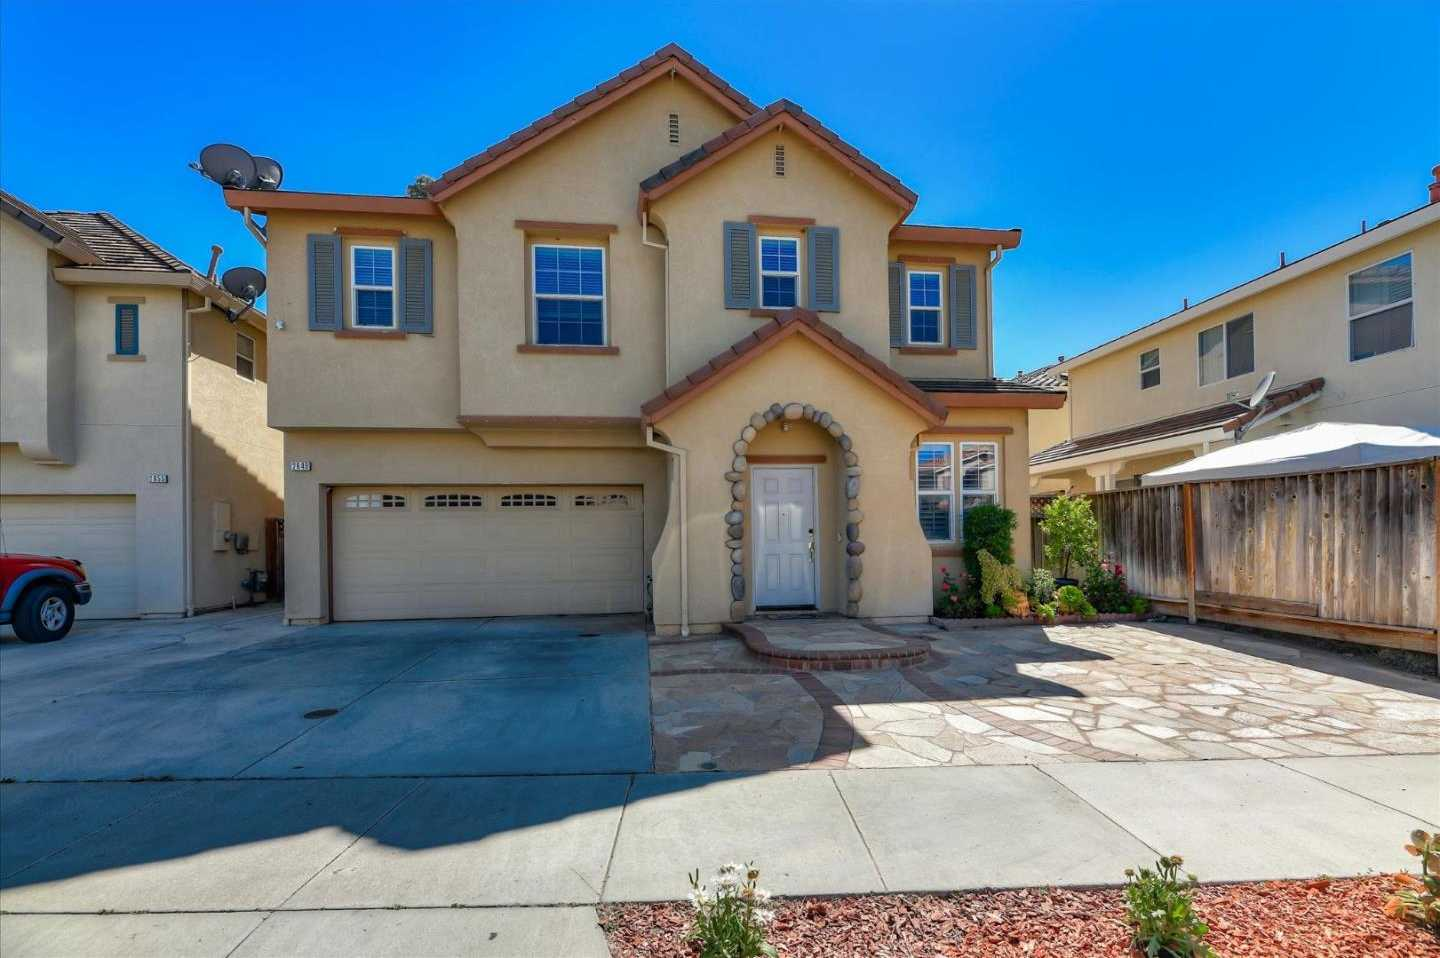 $1,068,000 - 4Br/3Ba -  for Sale in San Jose